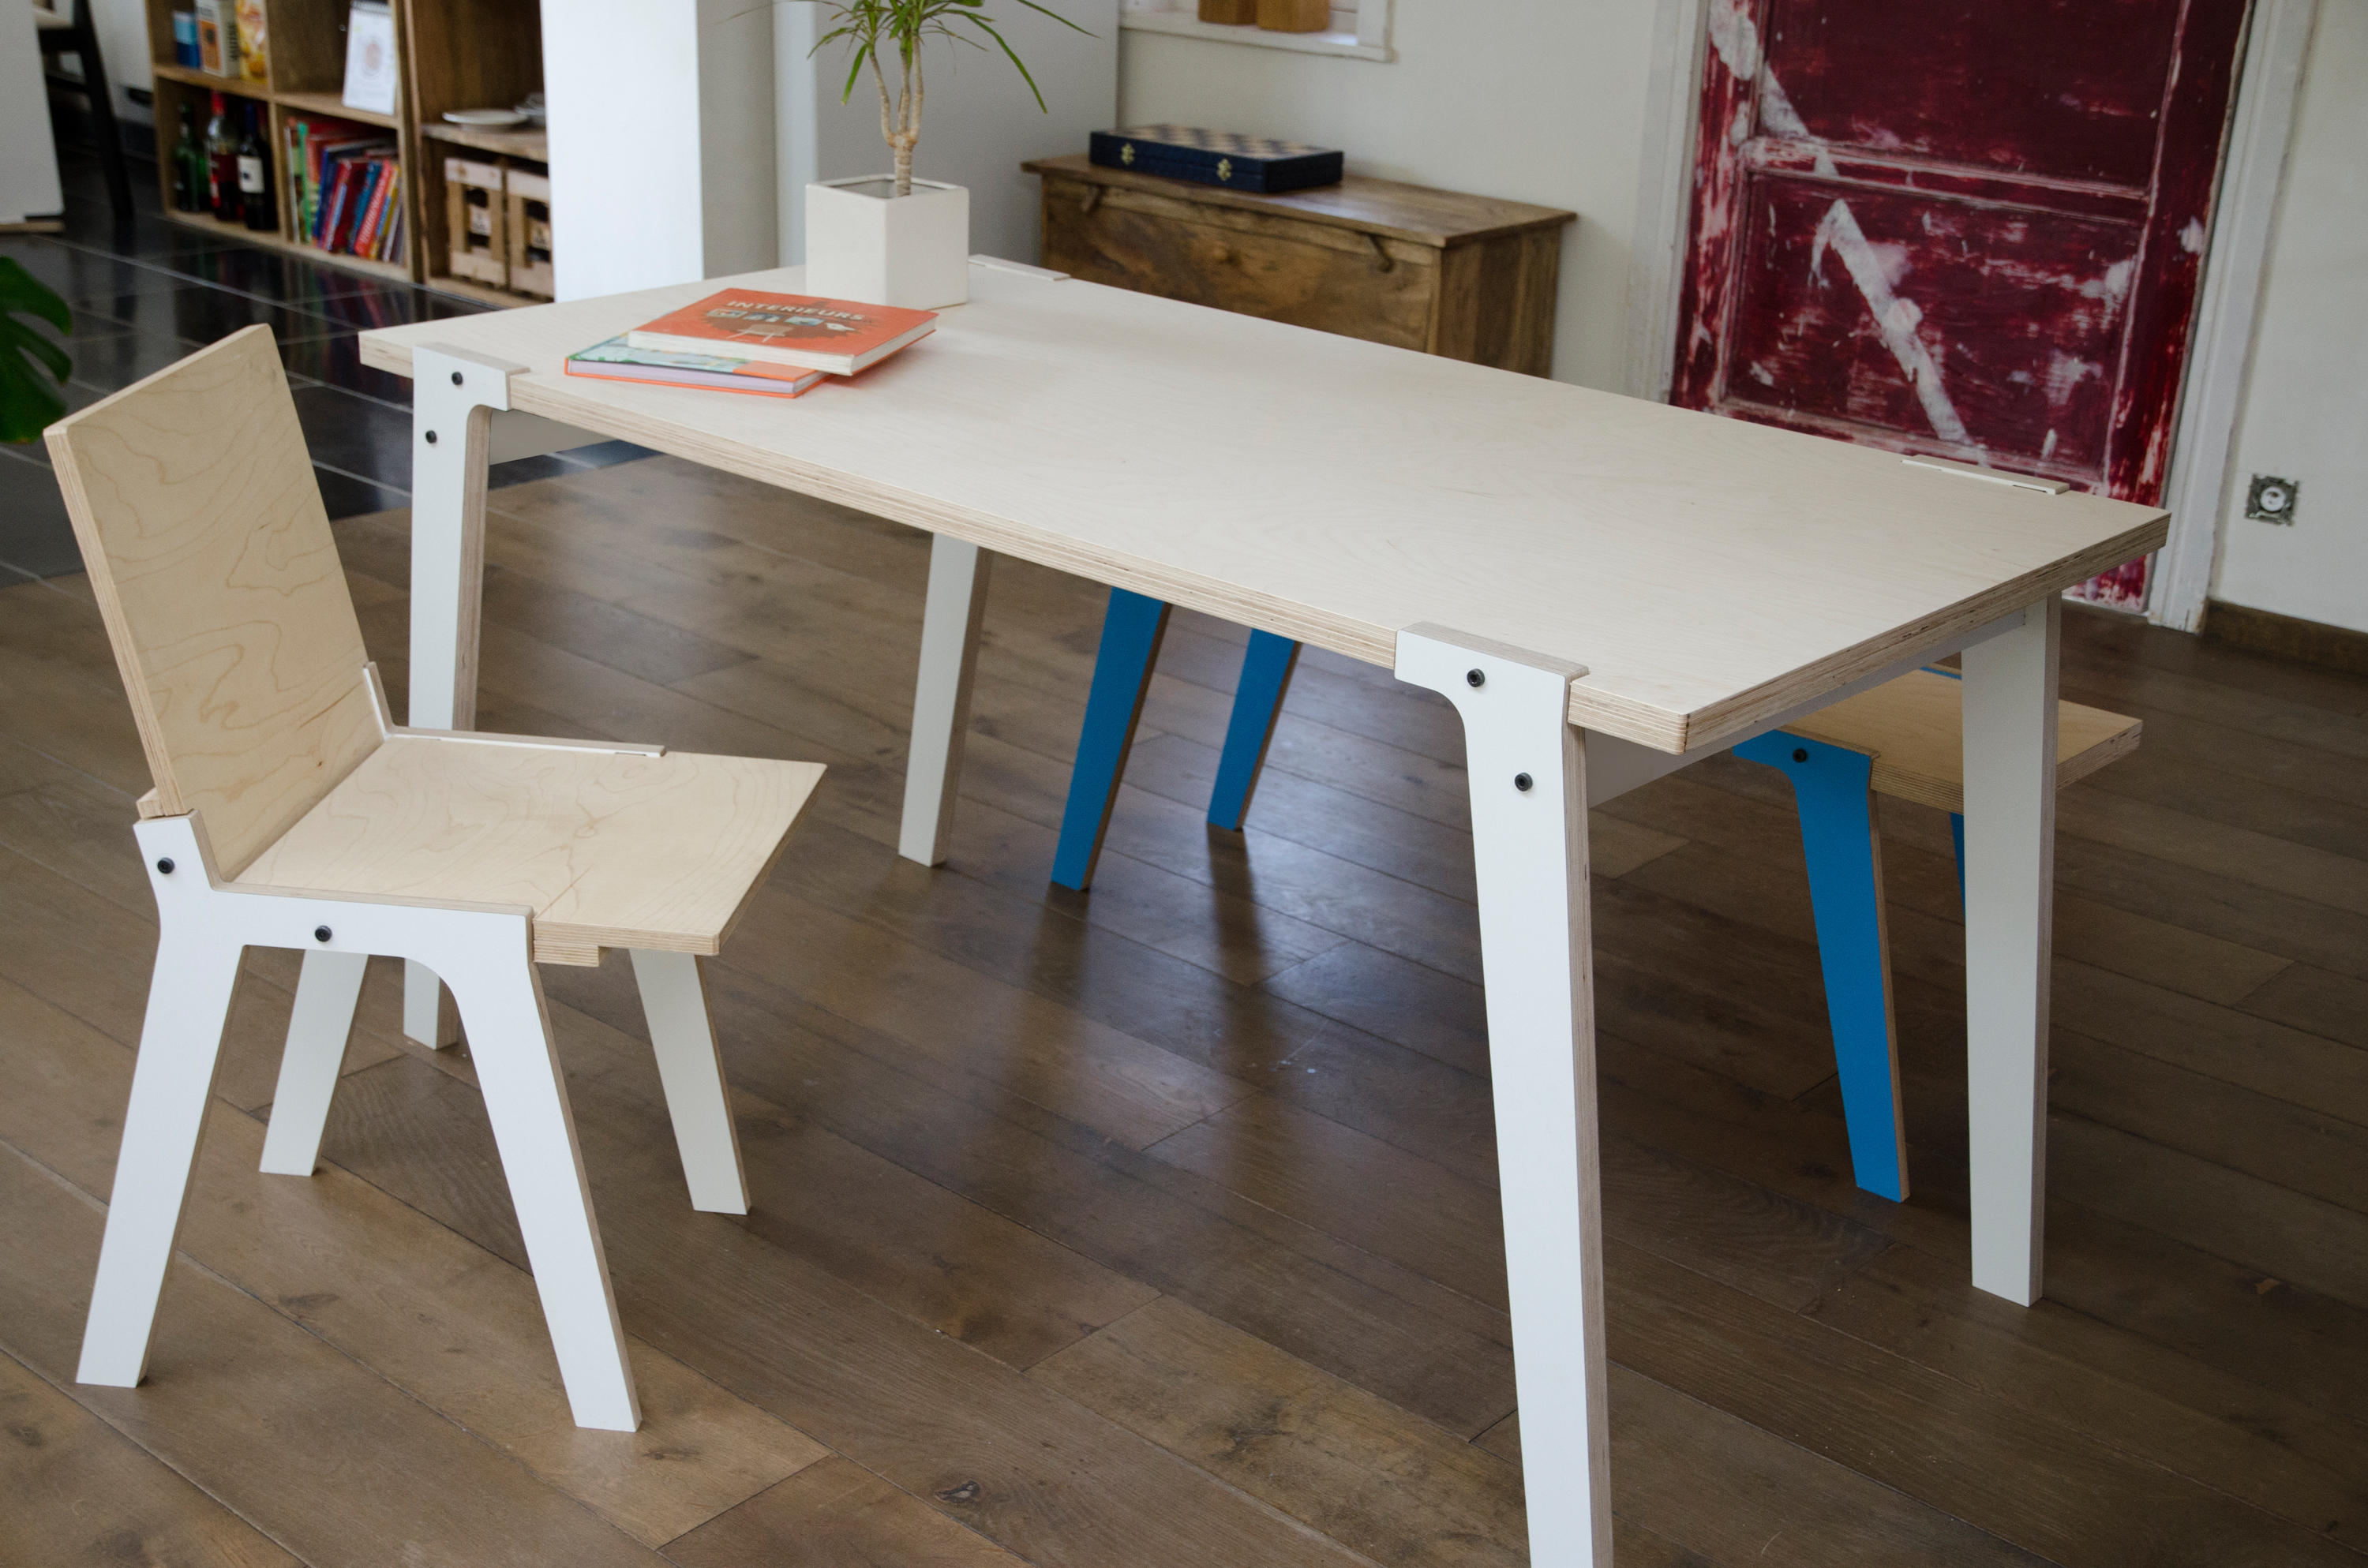 Groovy Switch Table S Dining Tables From Rform Architonic Caraccident5 Cool Chair Designs And Ideas Caraccident5Info